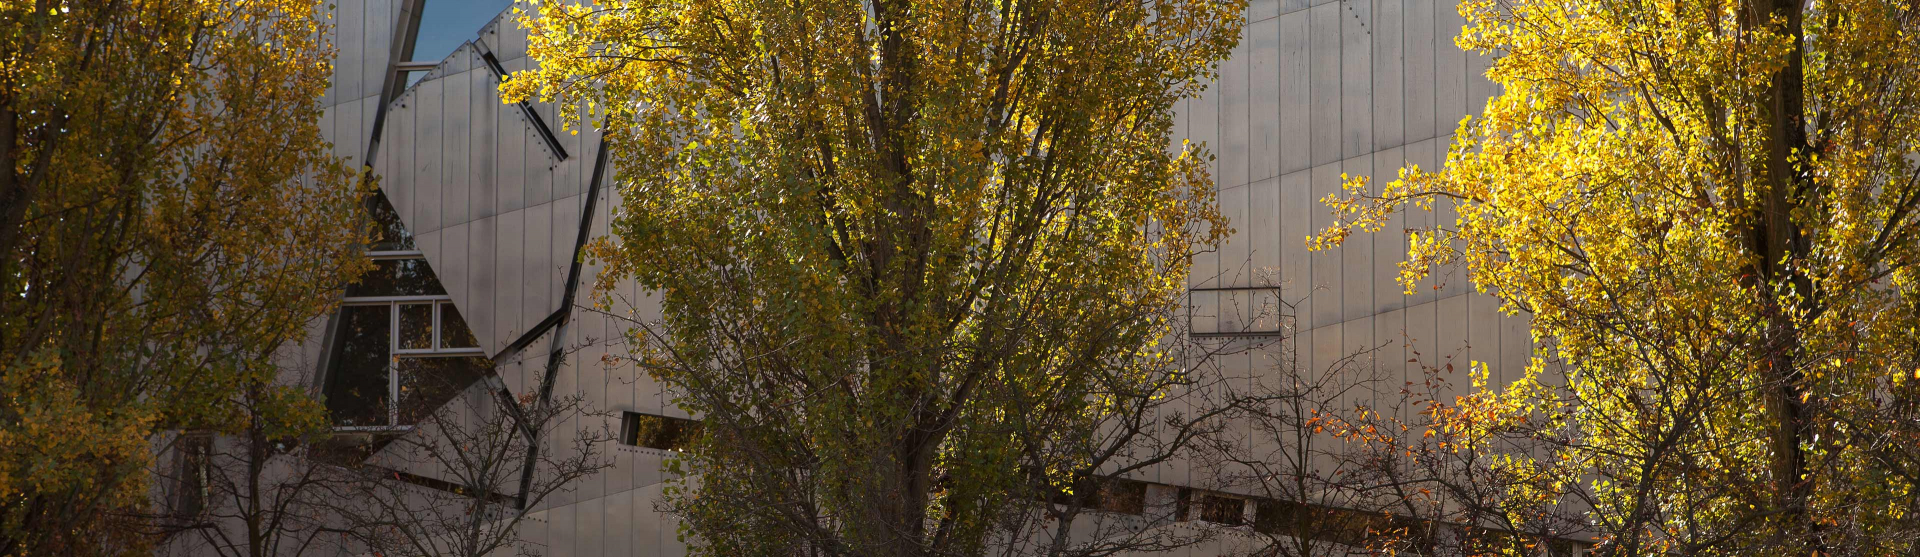 Trees in front of the Libeskind Building